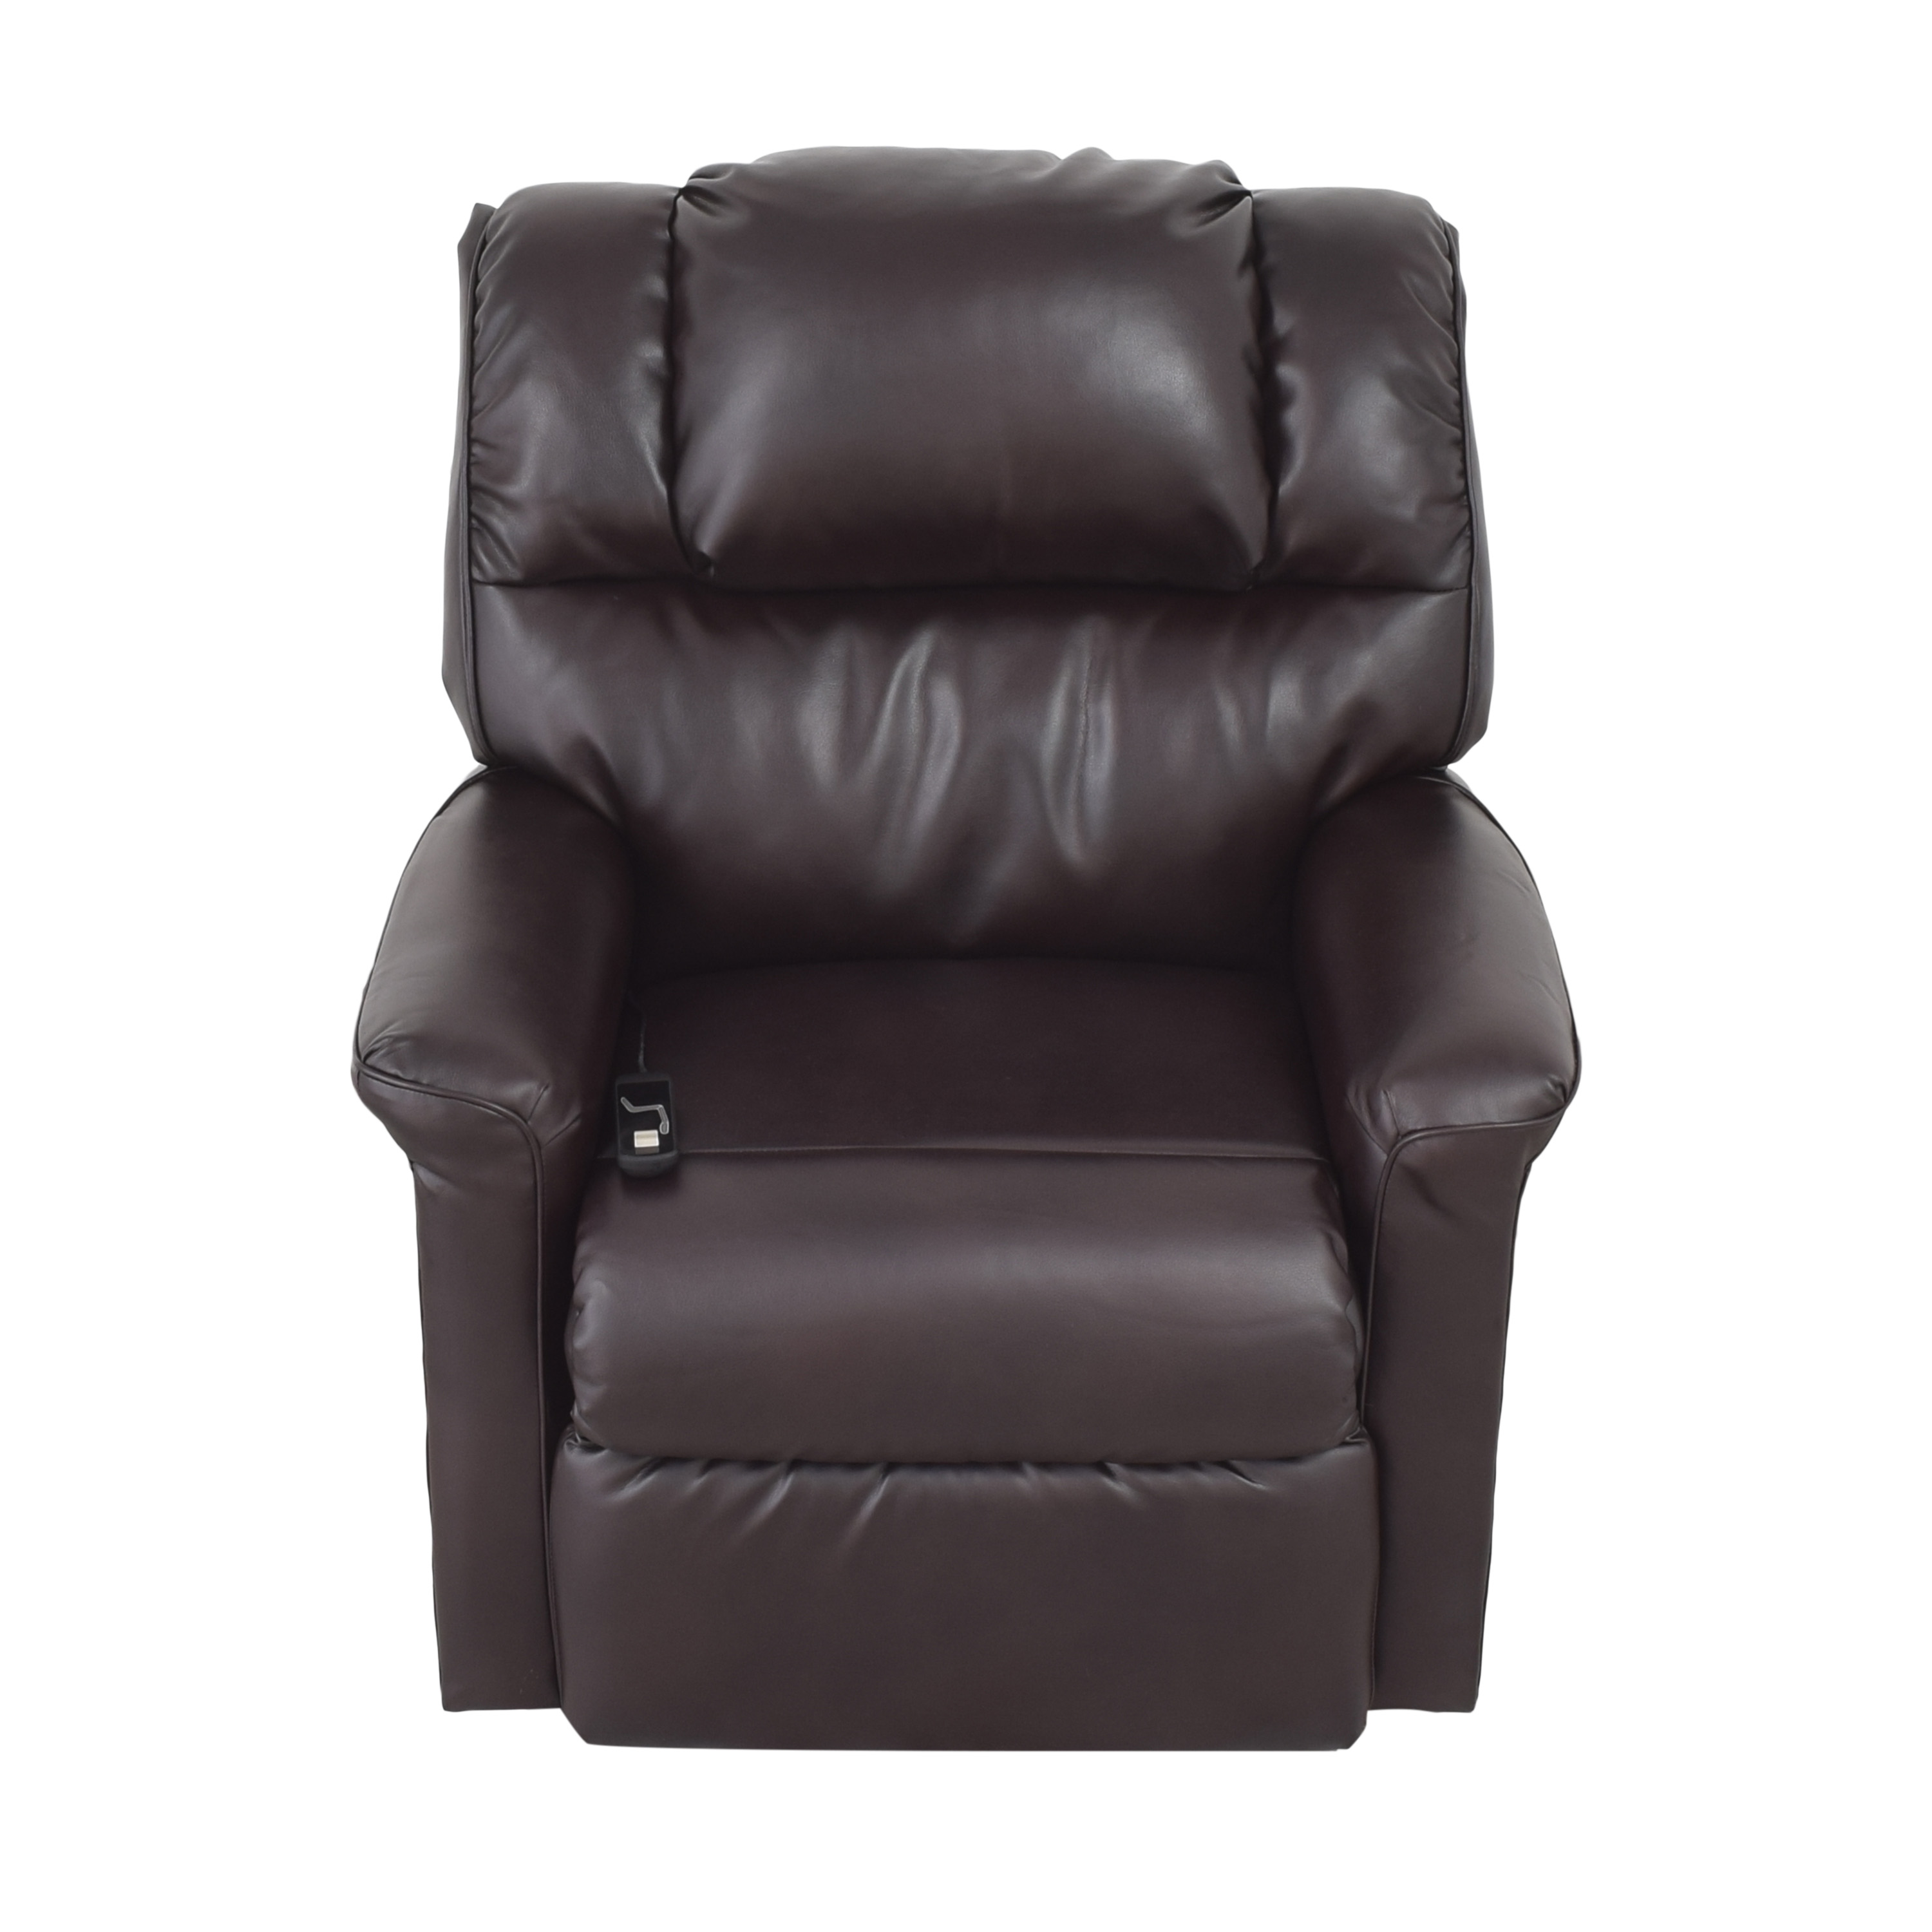 Raymour & Flanigan Raymour & Flanigan Myles Power Lift Recliner coupon